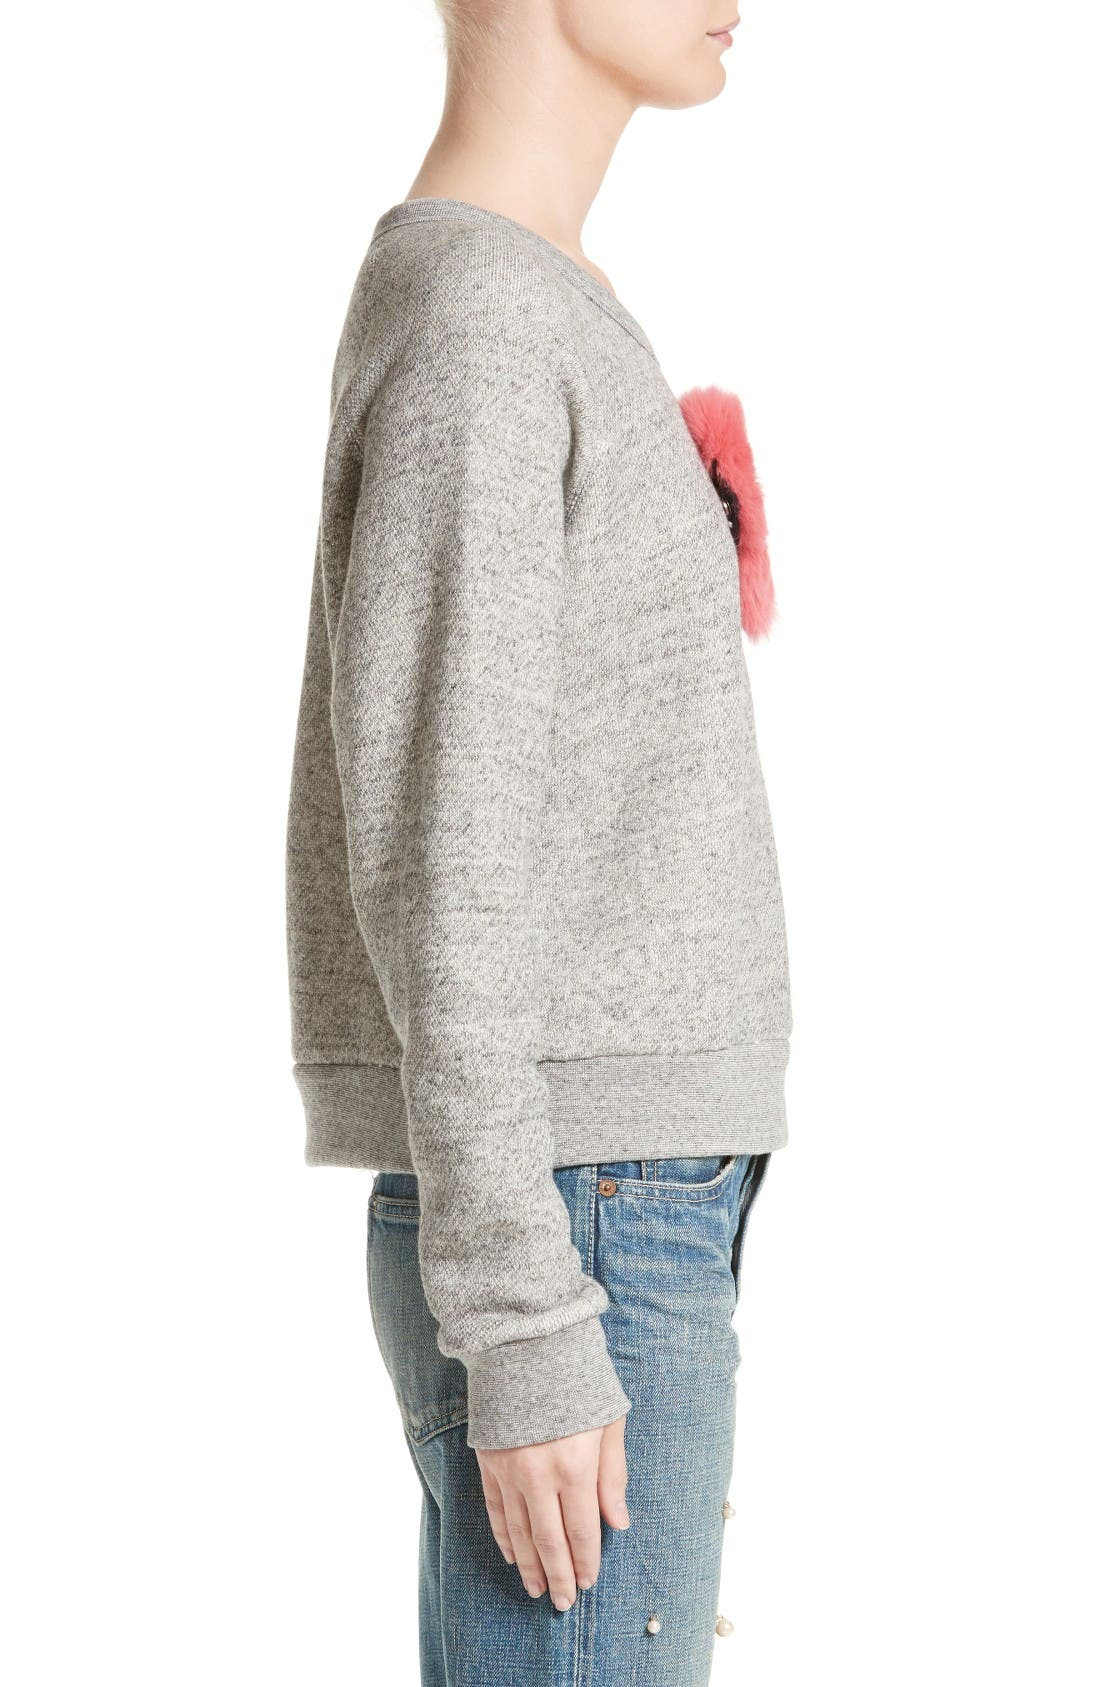 One Heart Pullover,                             Alternate thumbnail 5, color,                             Charcoal/Red